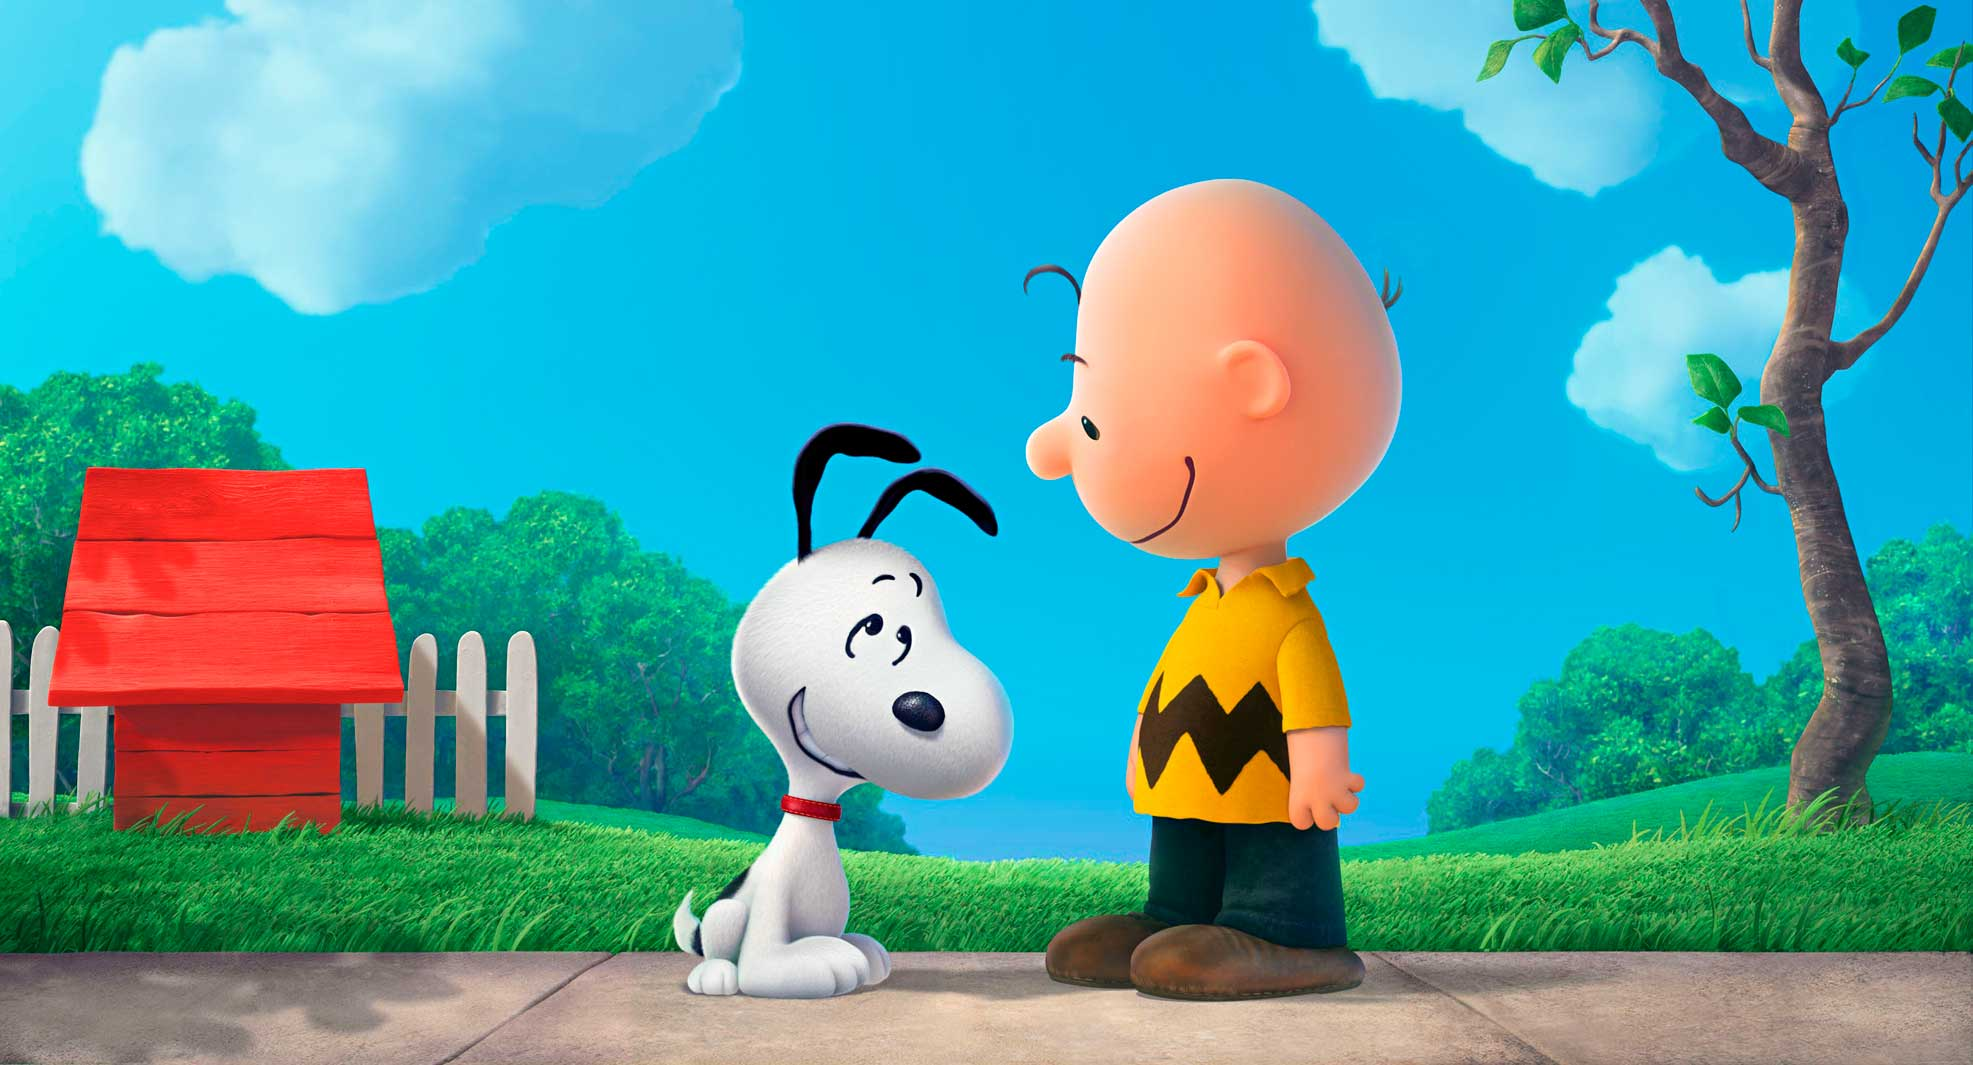 Though now rendered in 3-D, Snoopy and Charlie Brown are familiar as ever